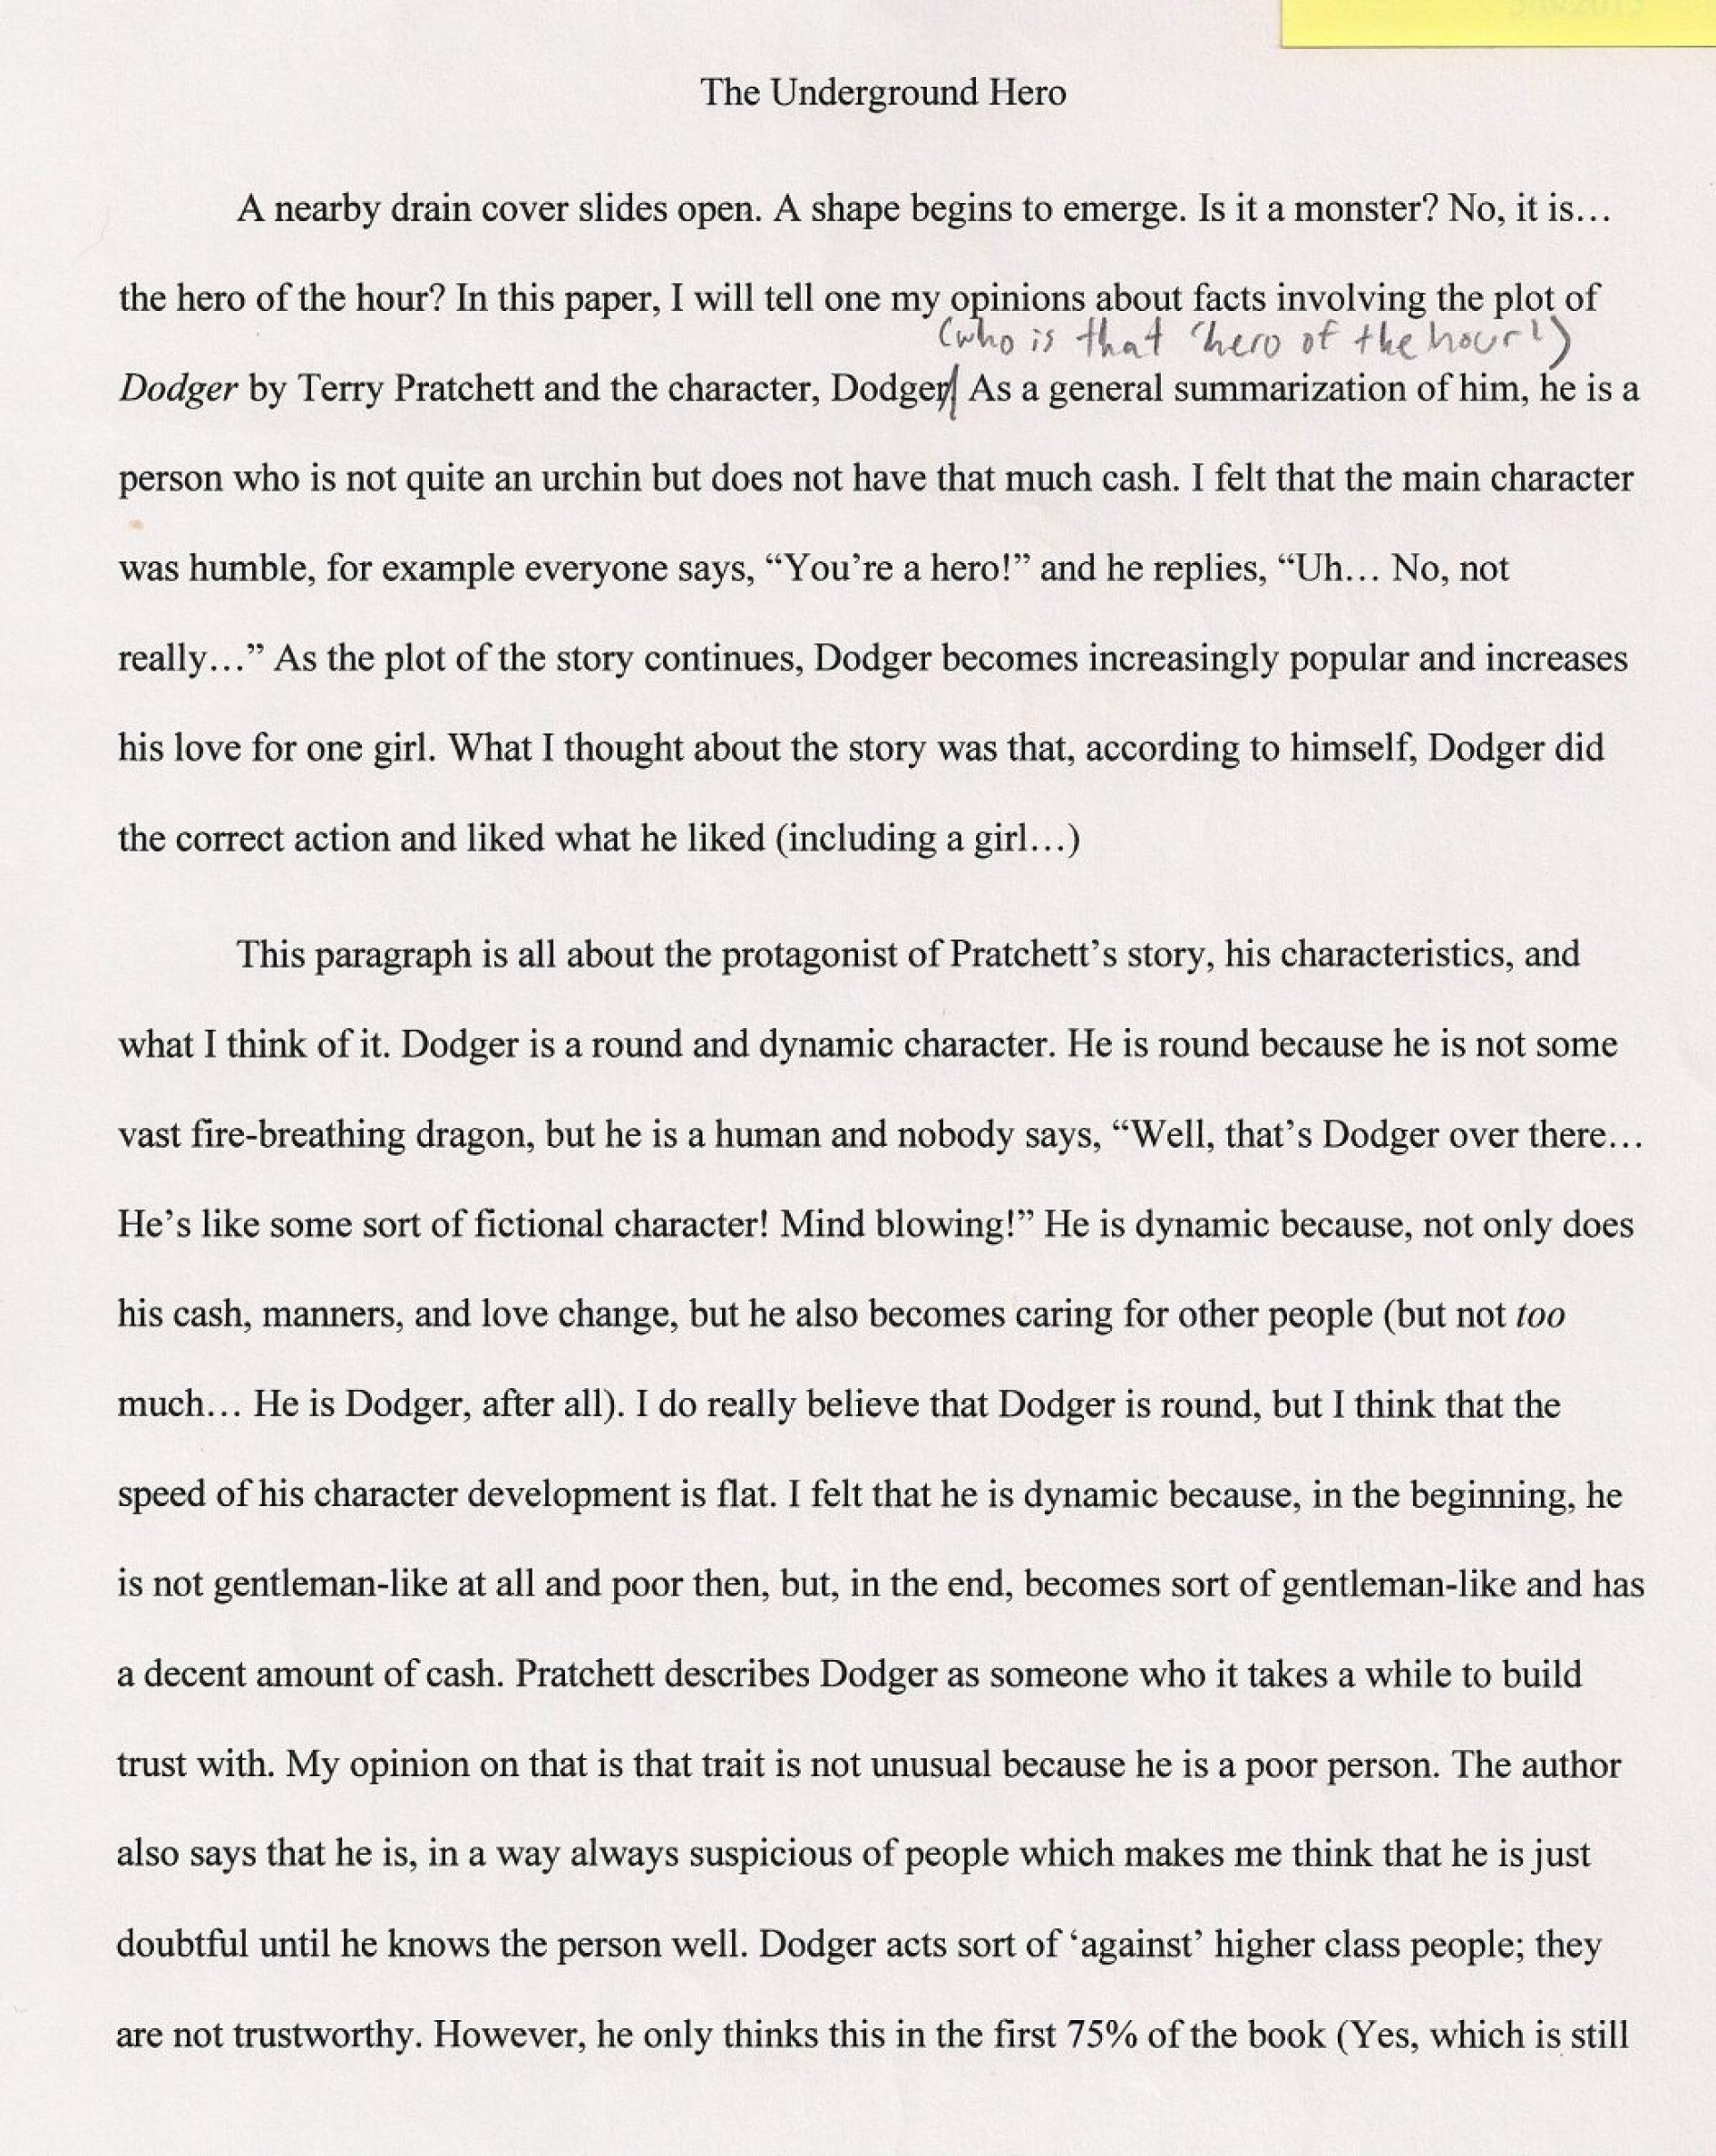 018 Essay Example Satire Essays Global Warming On Heroes My Hero How To Write An Argumentative The Undergro Persuasive About Study Mode Good Paper Fearsome Satirical Topics For High School Examples Gun Control 1920